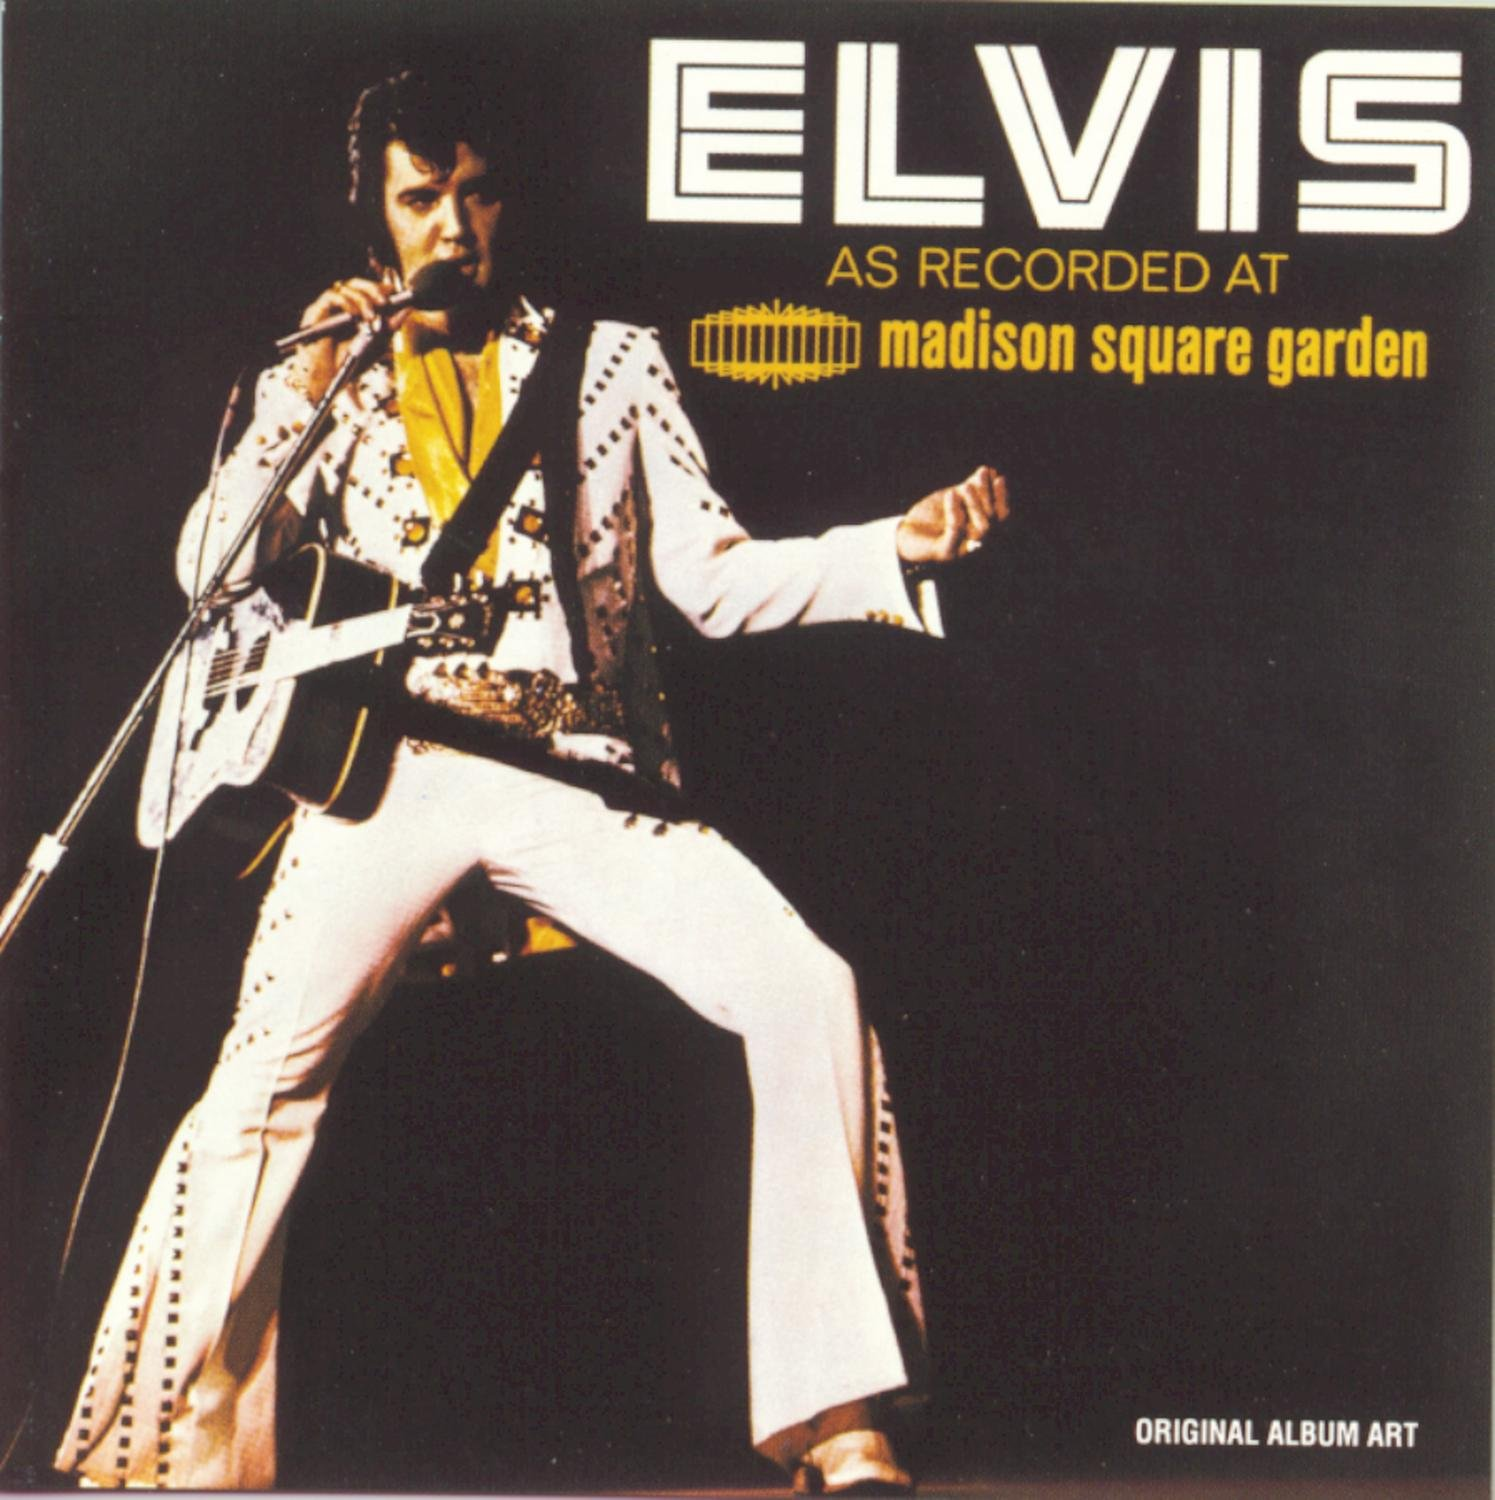 Elvis as Recorded at Madison Square Garden